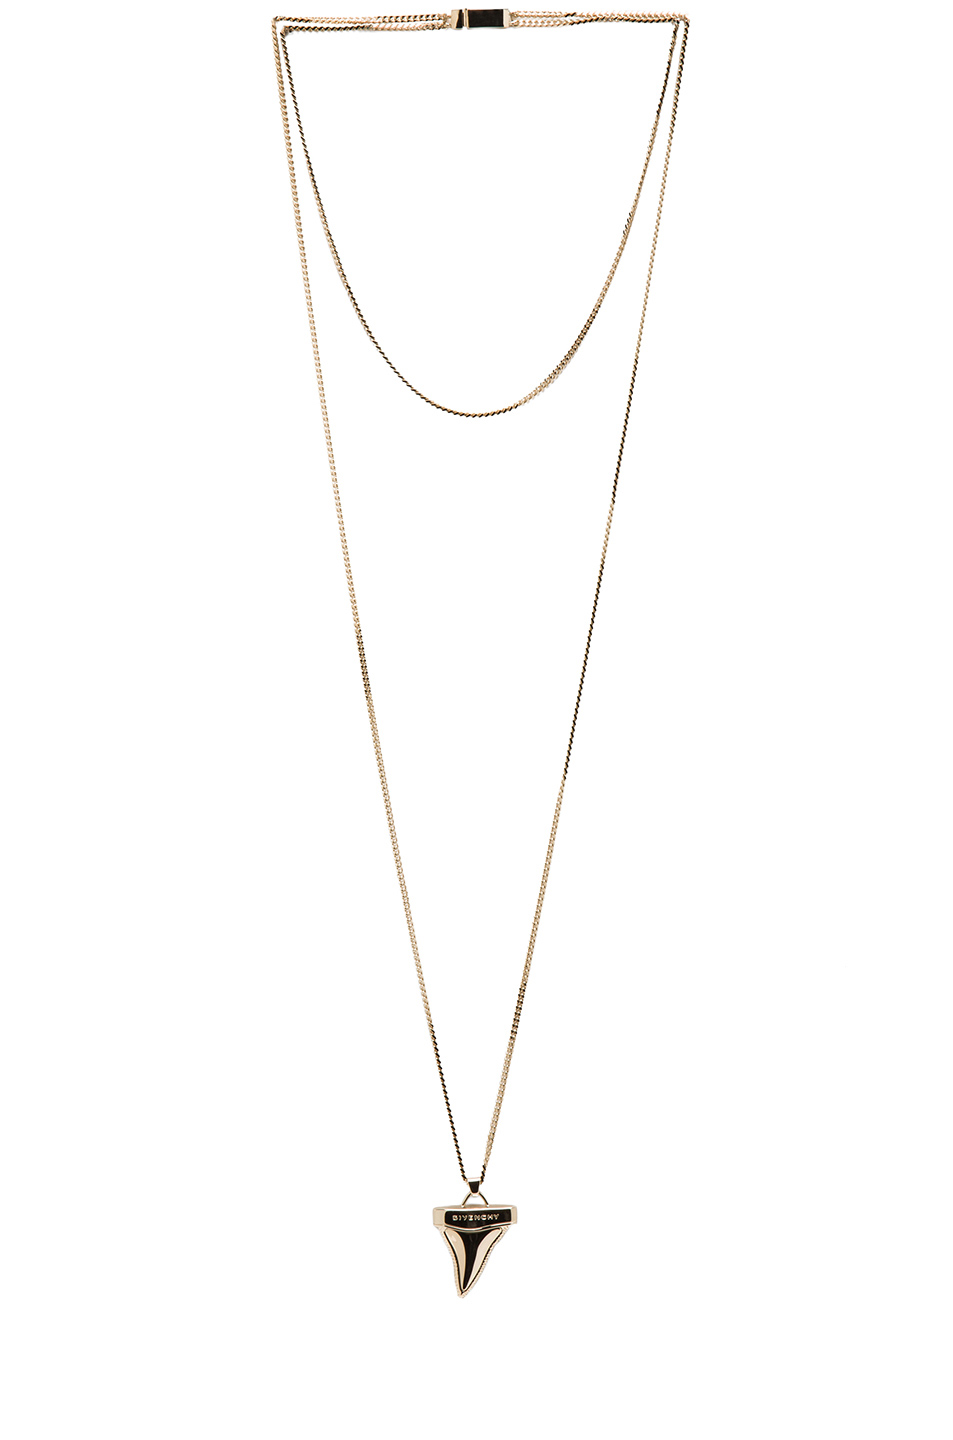 GIVENCHY|Shark Tooth Small Necklace in Gold